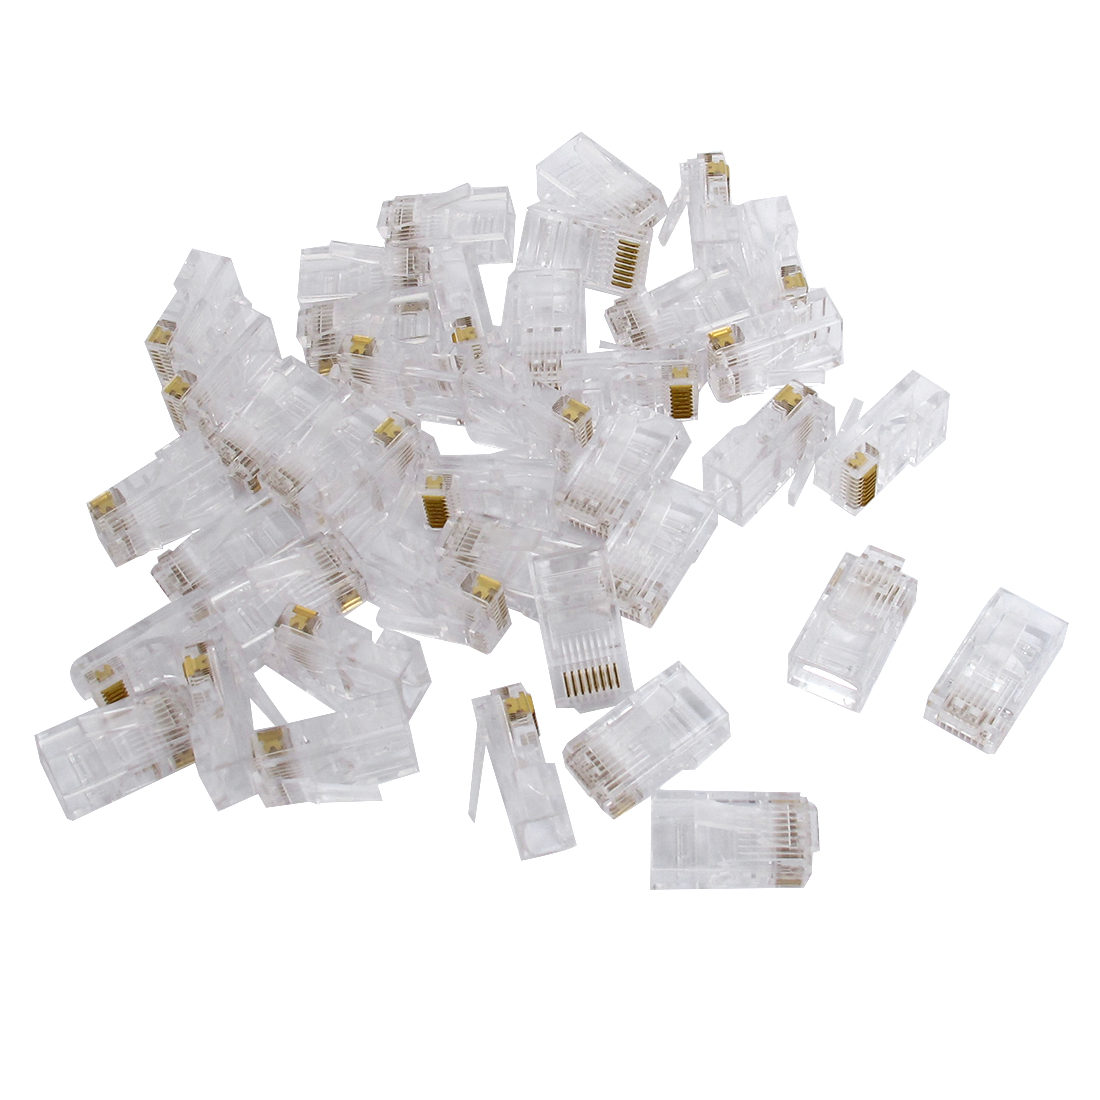 40 Pcs RJ45 8P8C Modular Network Crimp Adapter Ethernet Cable Wire Connector End